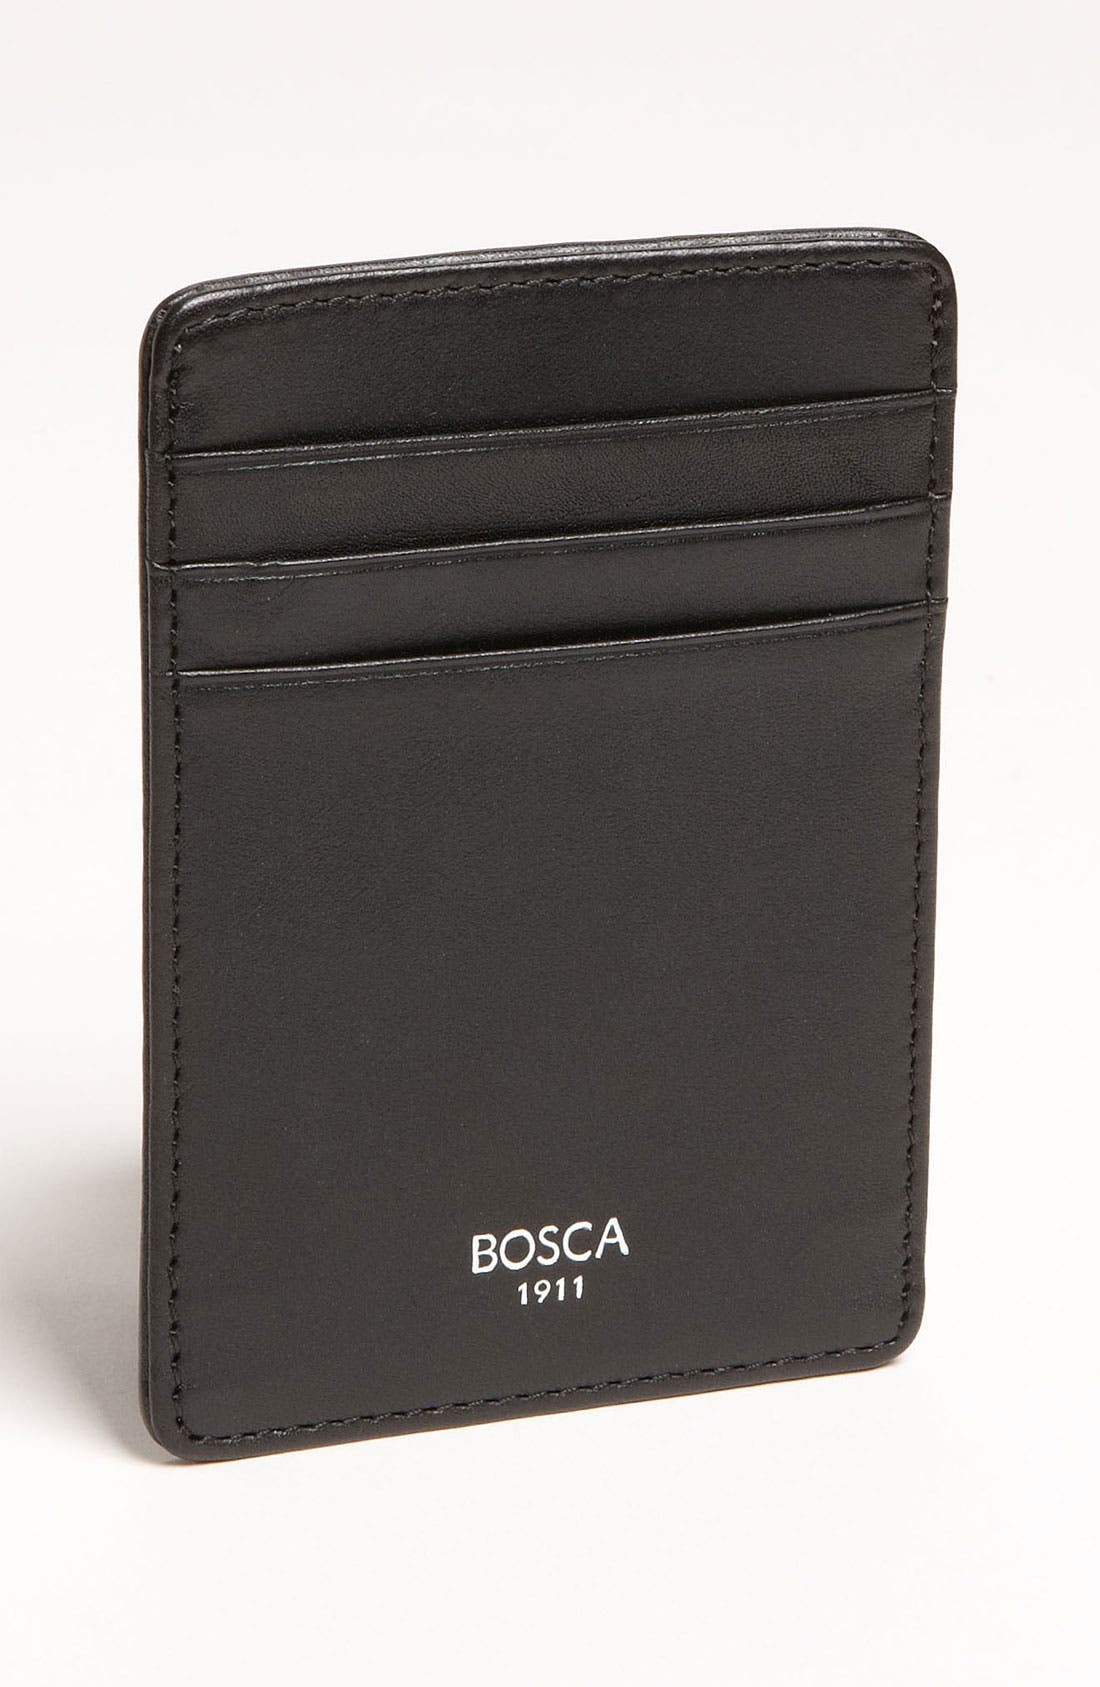 Alternate Image 1 Selected - Bosca Leather Money Clip Card Case